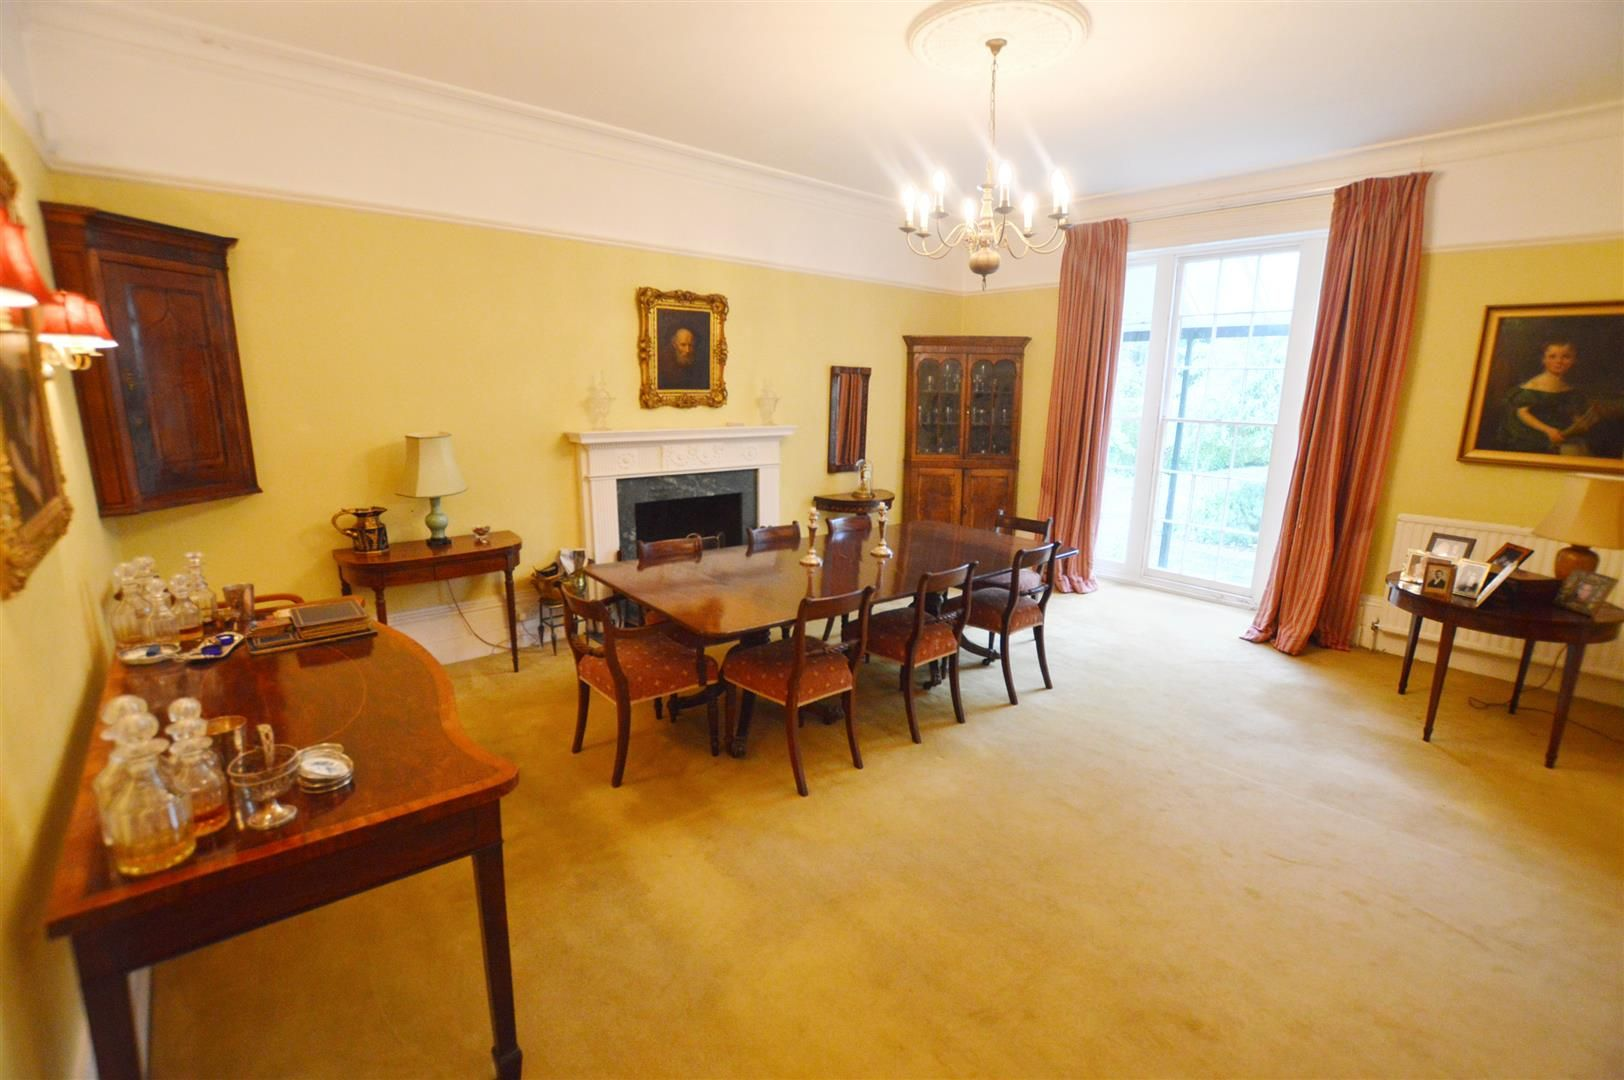 6 bed country-house for sale in Pembridge 5